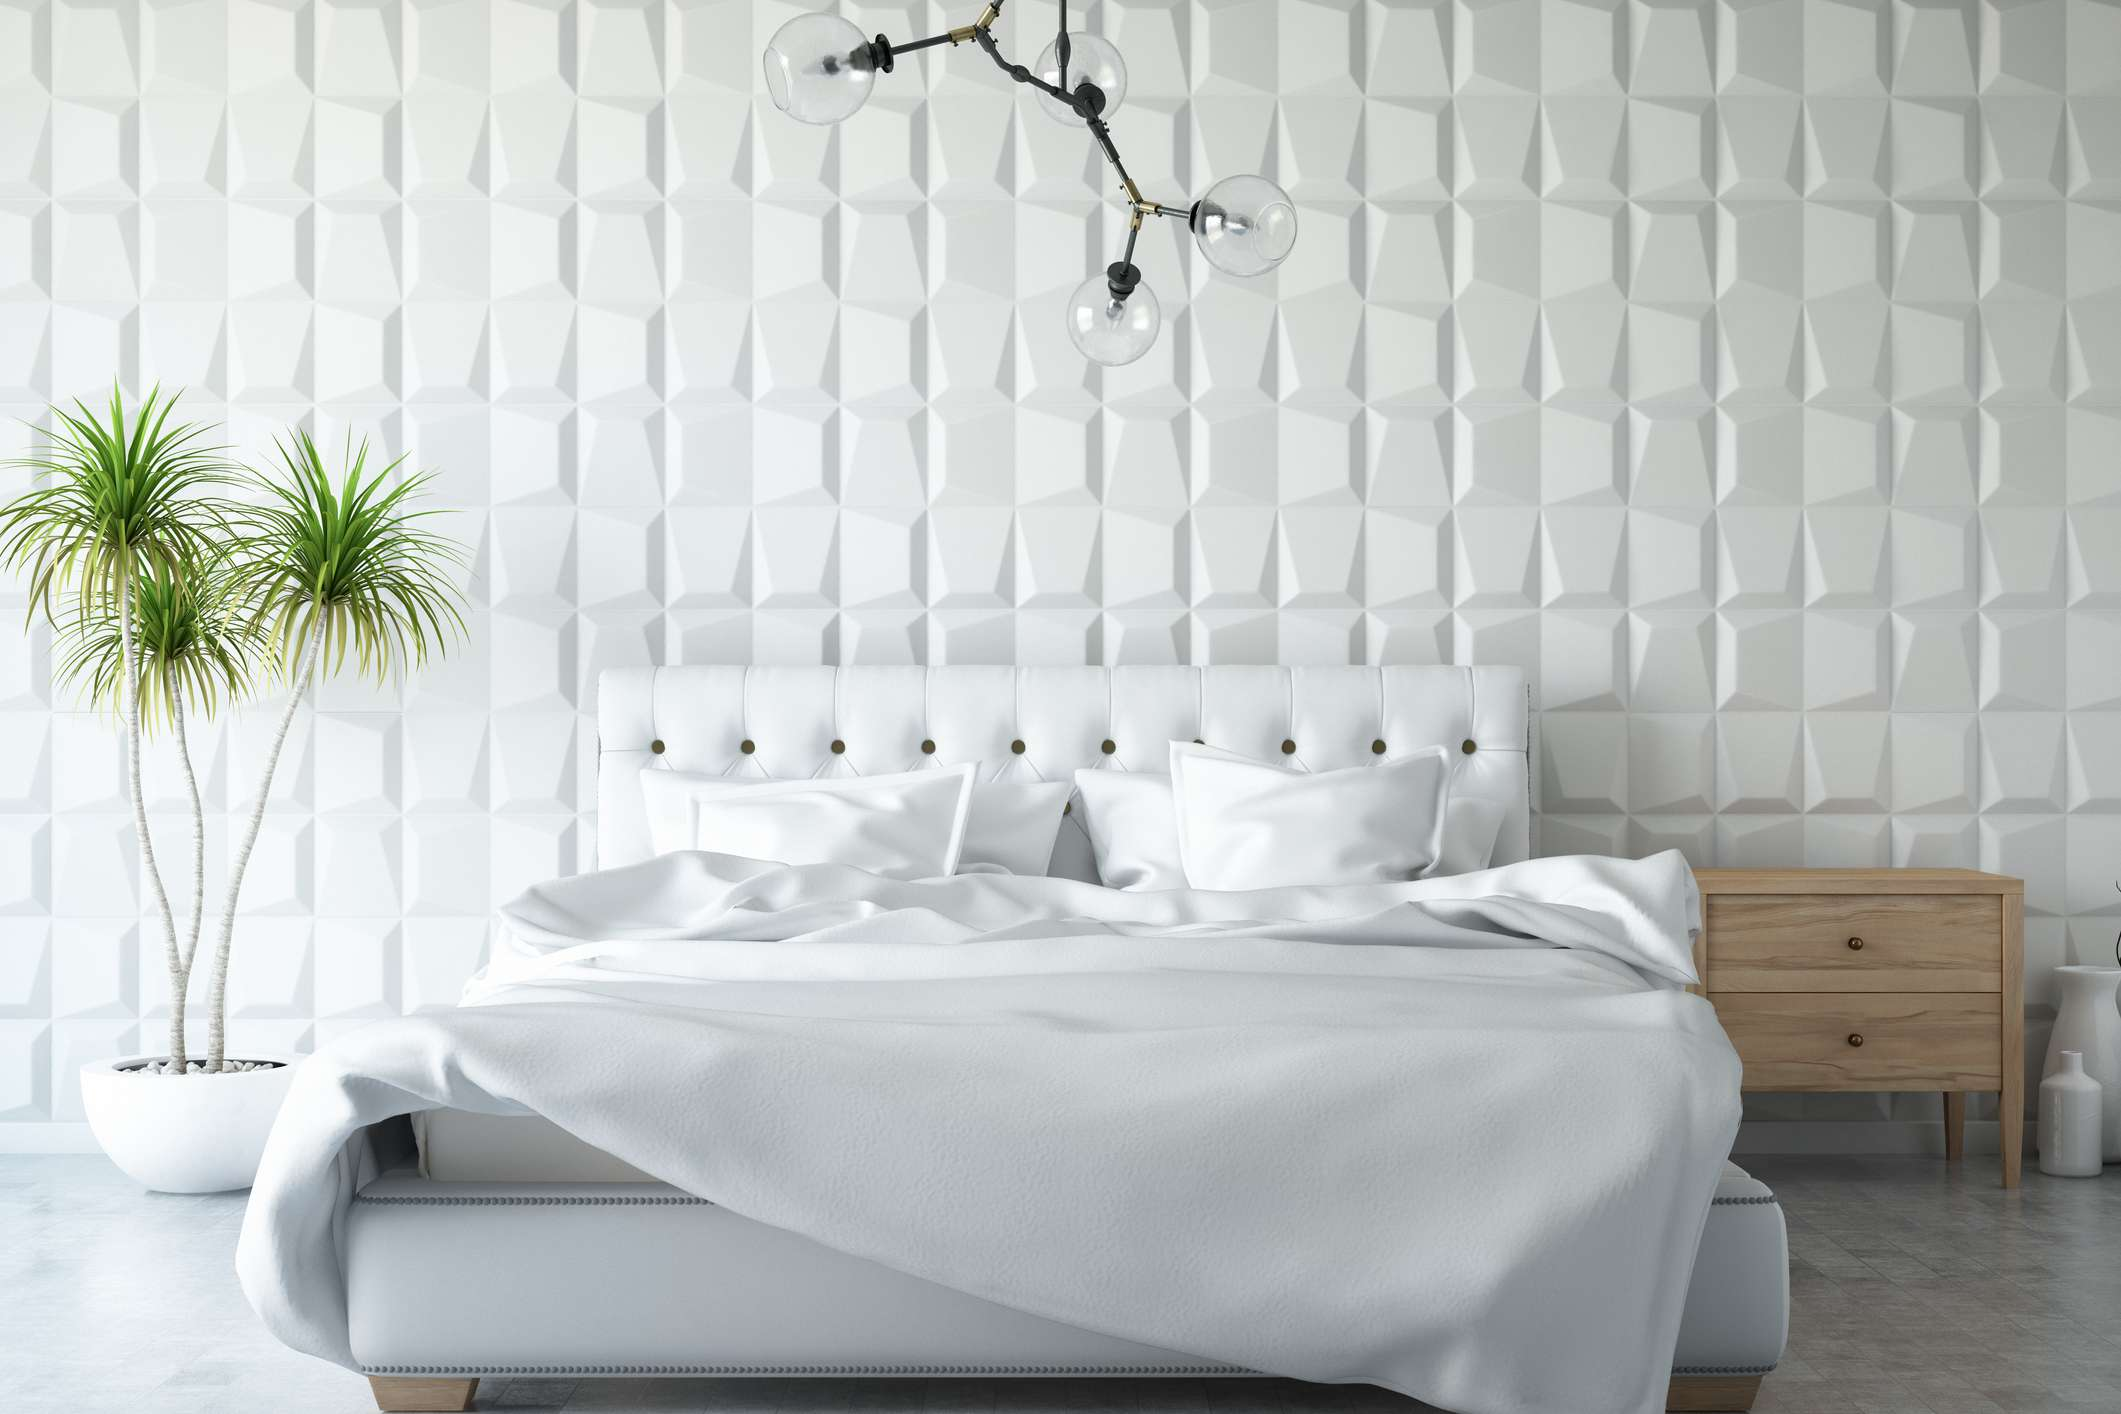 A textured wall and tufted leather headboardadds interest to a white bedroom.